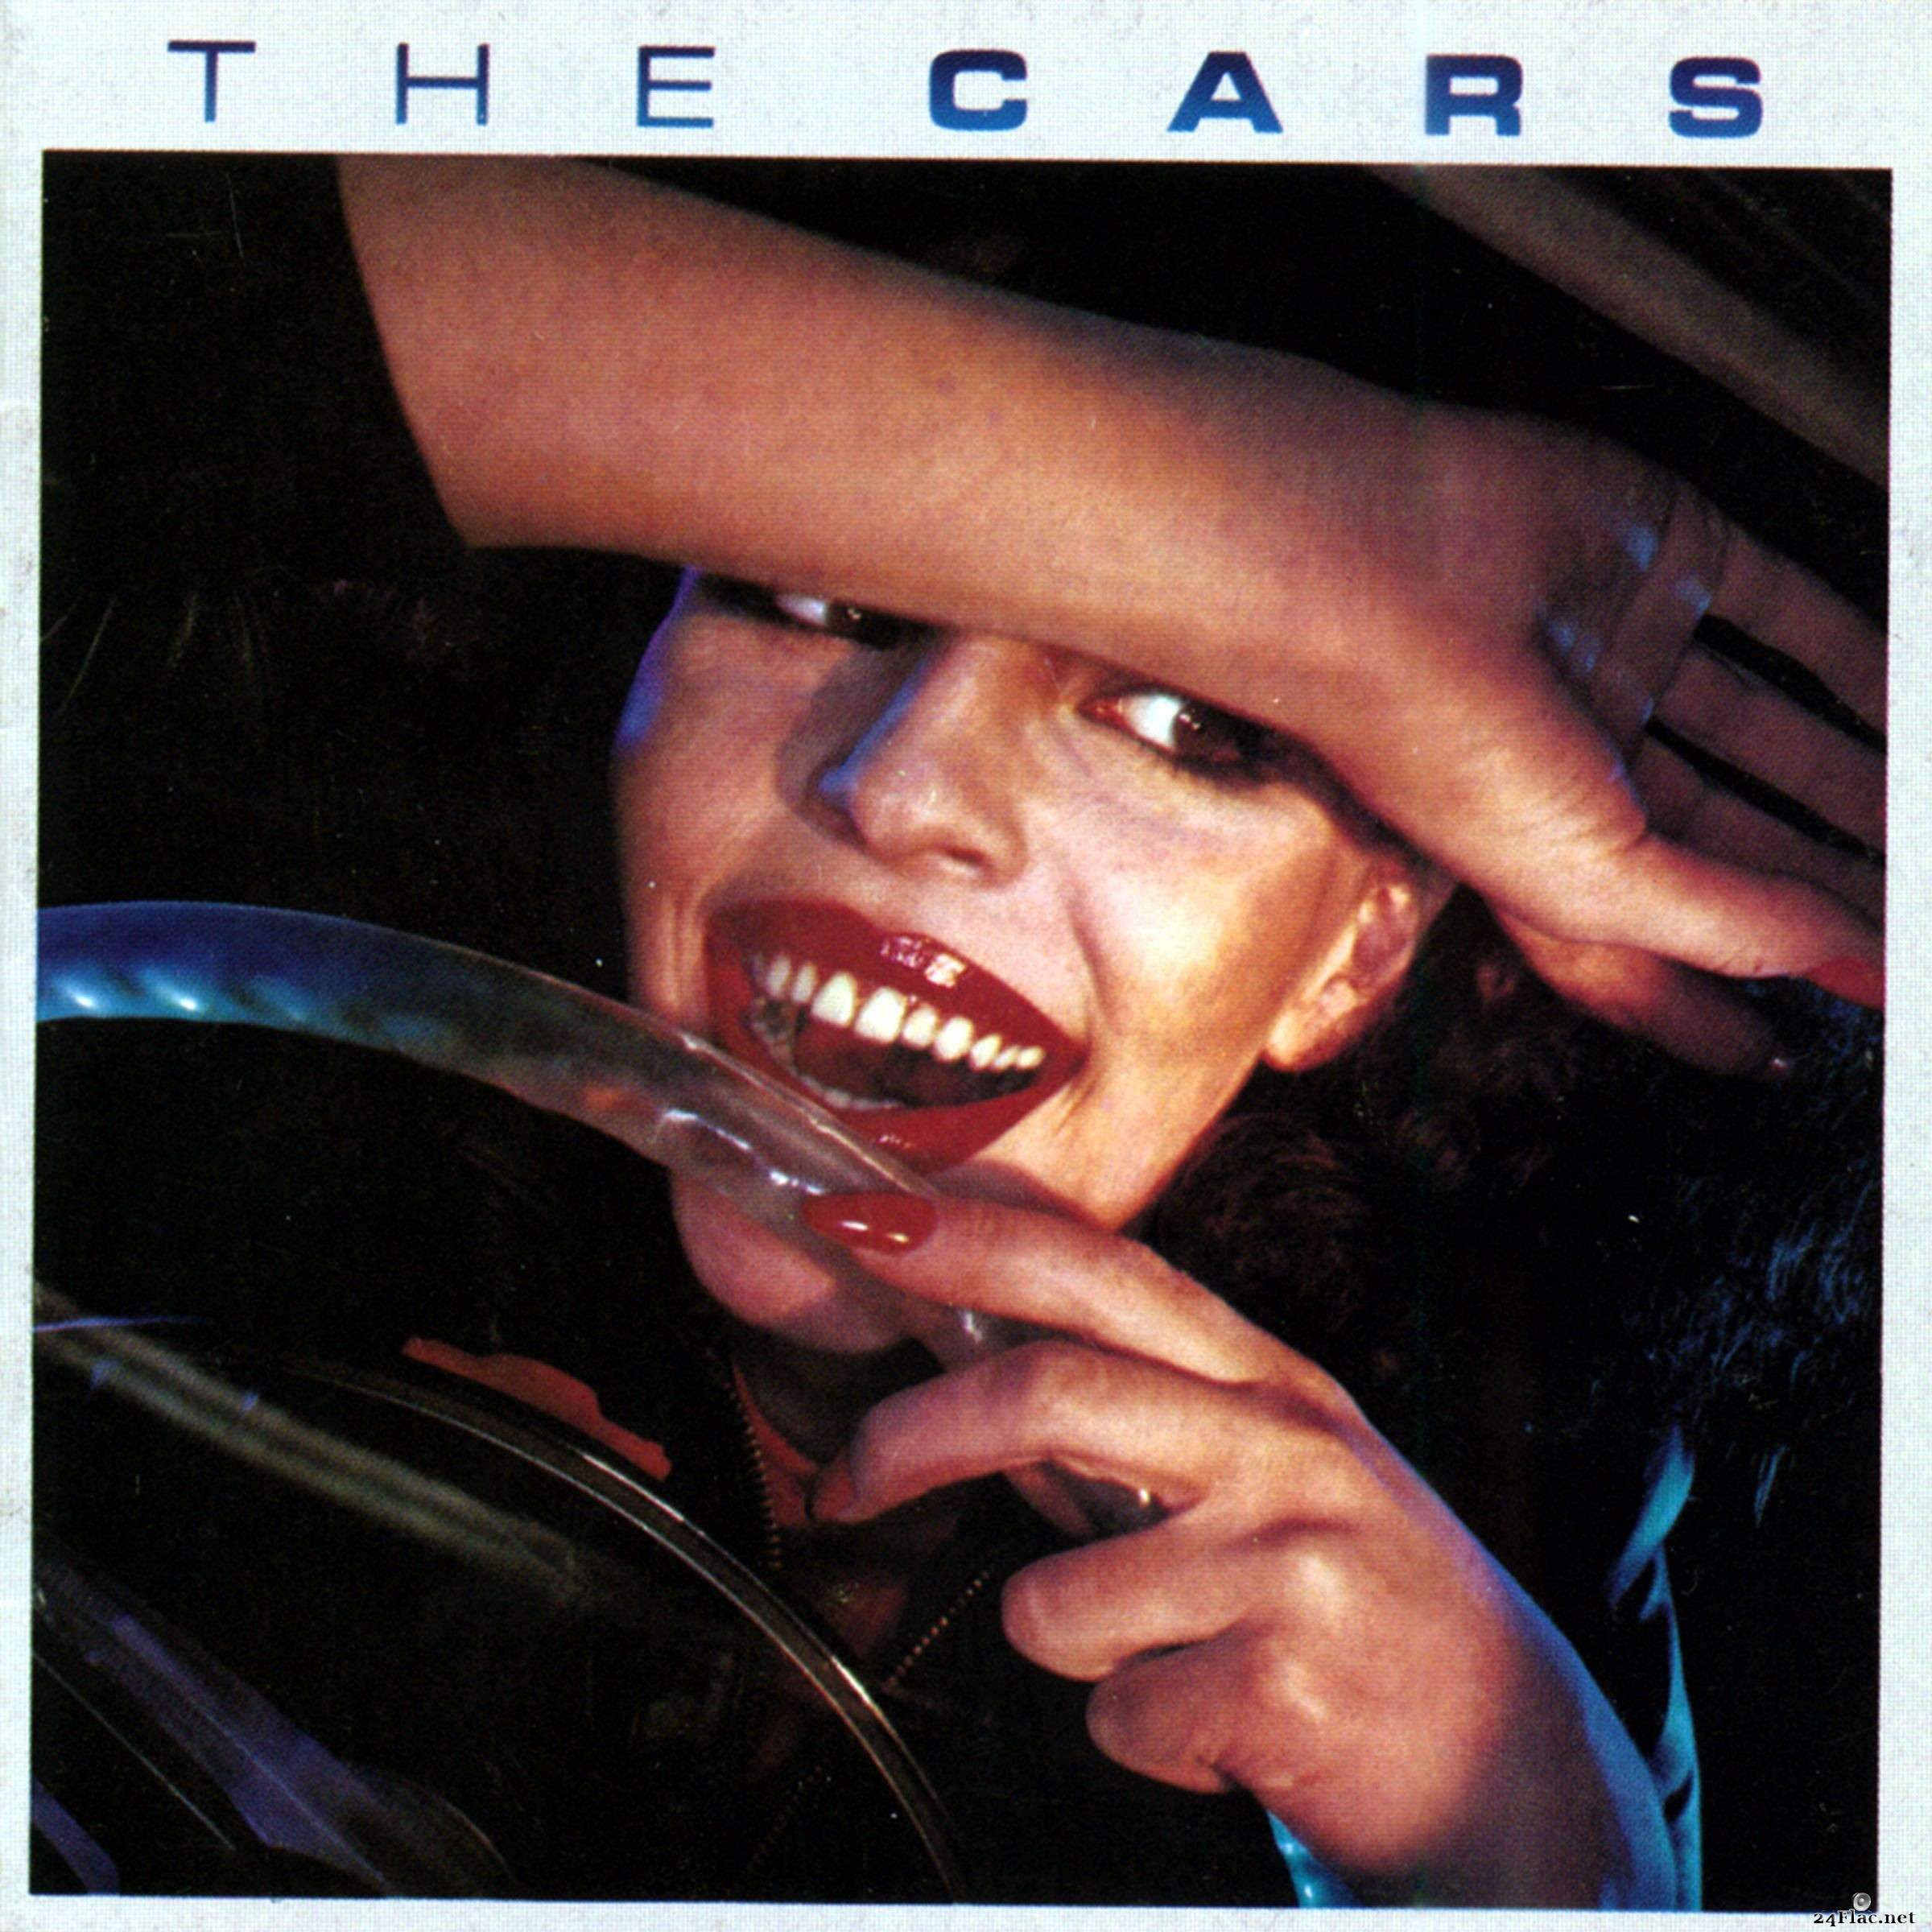 The Cars - The Cars (2016) Hi-Res